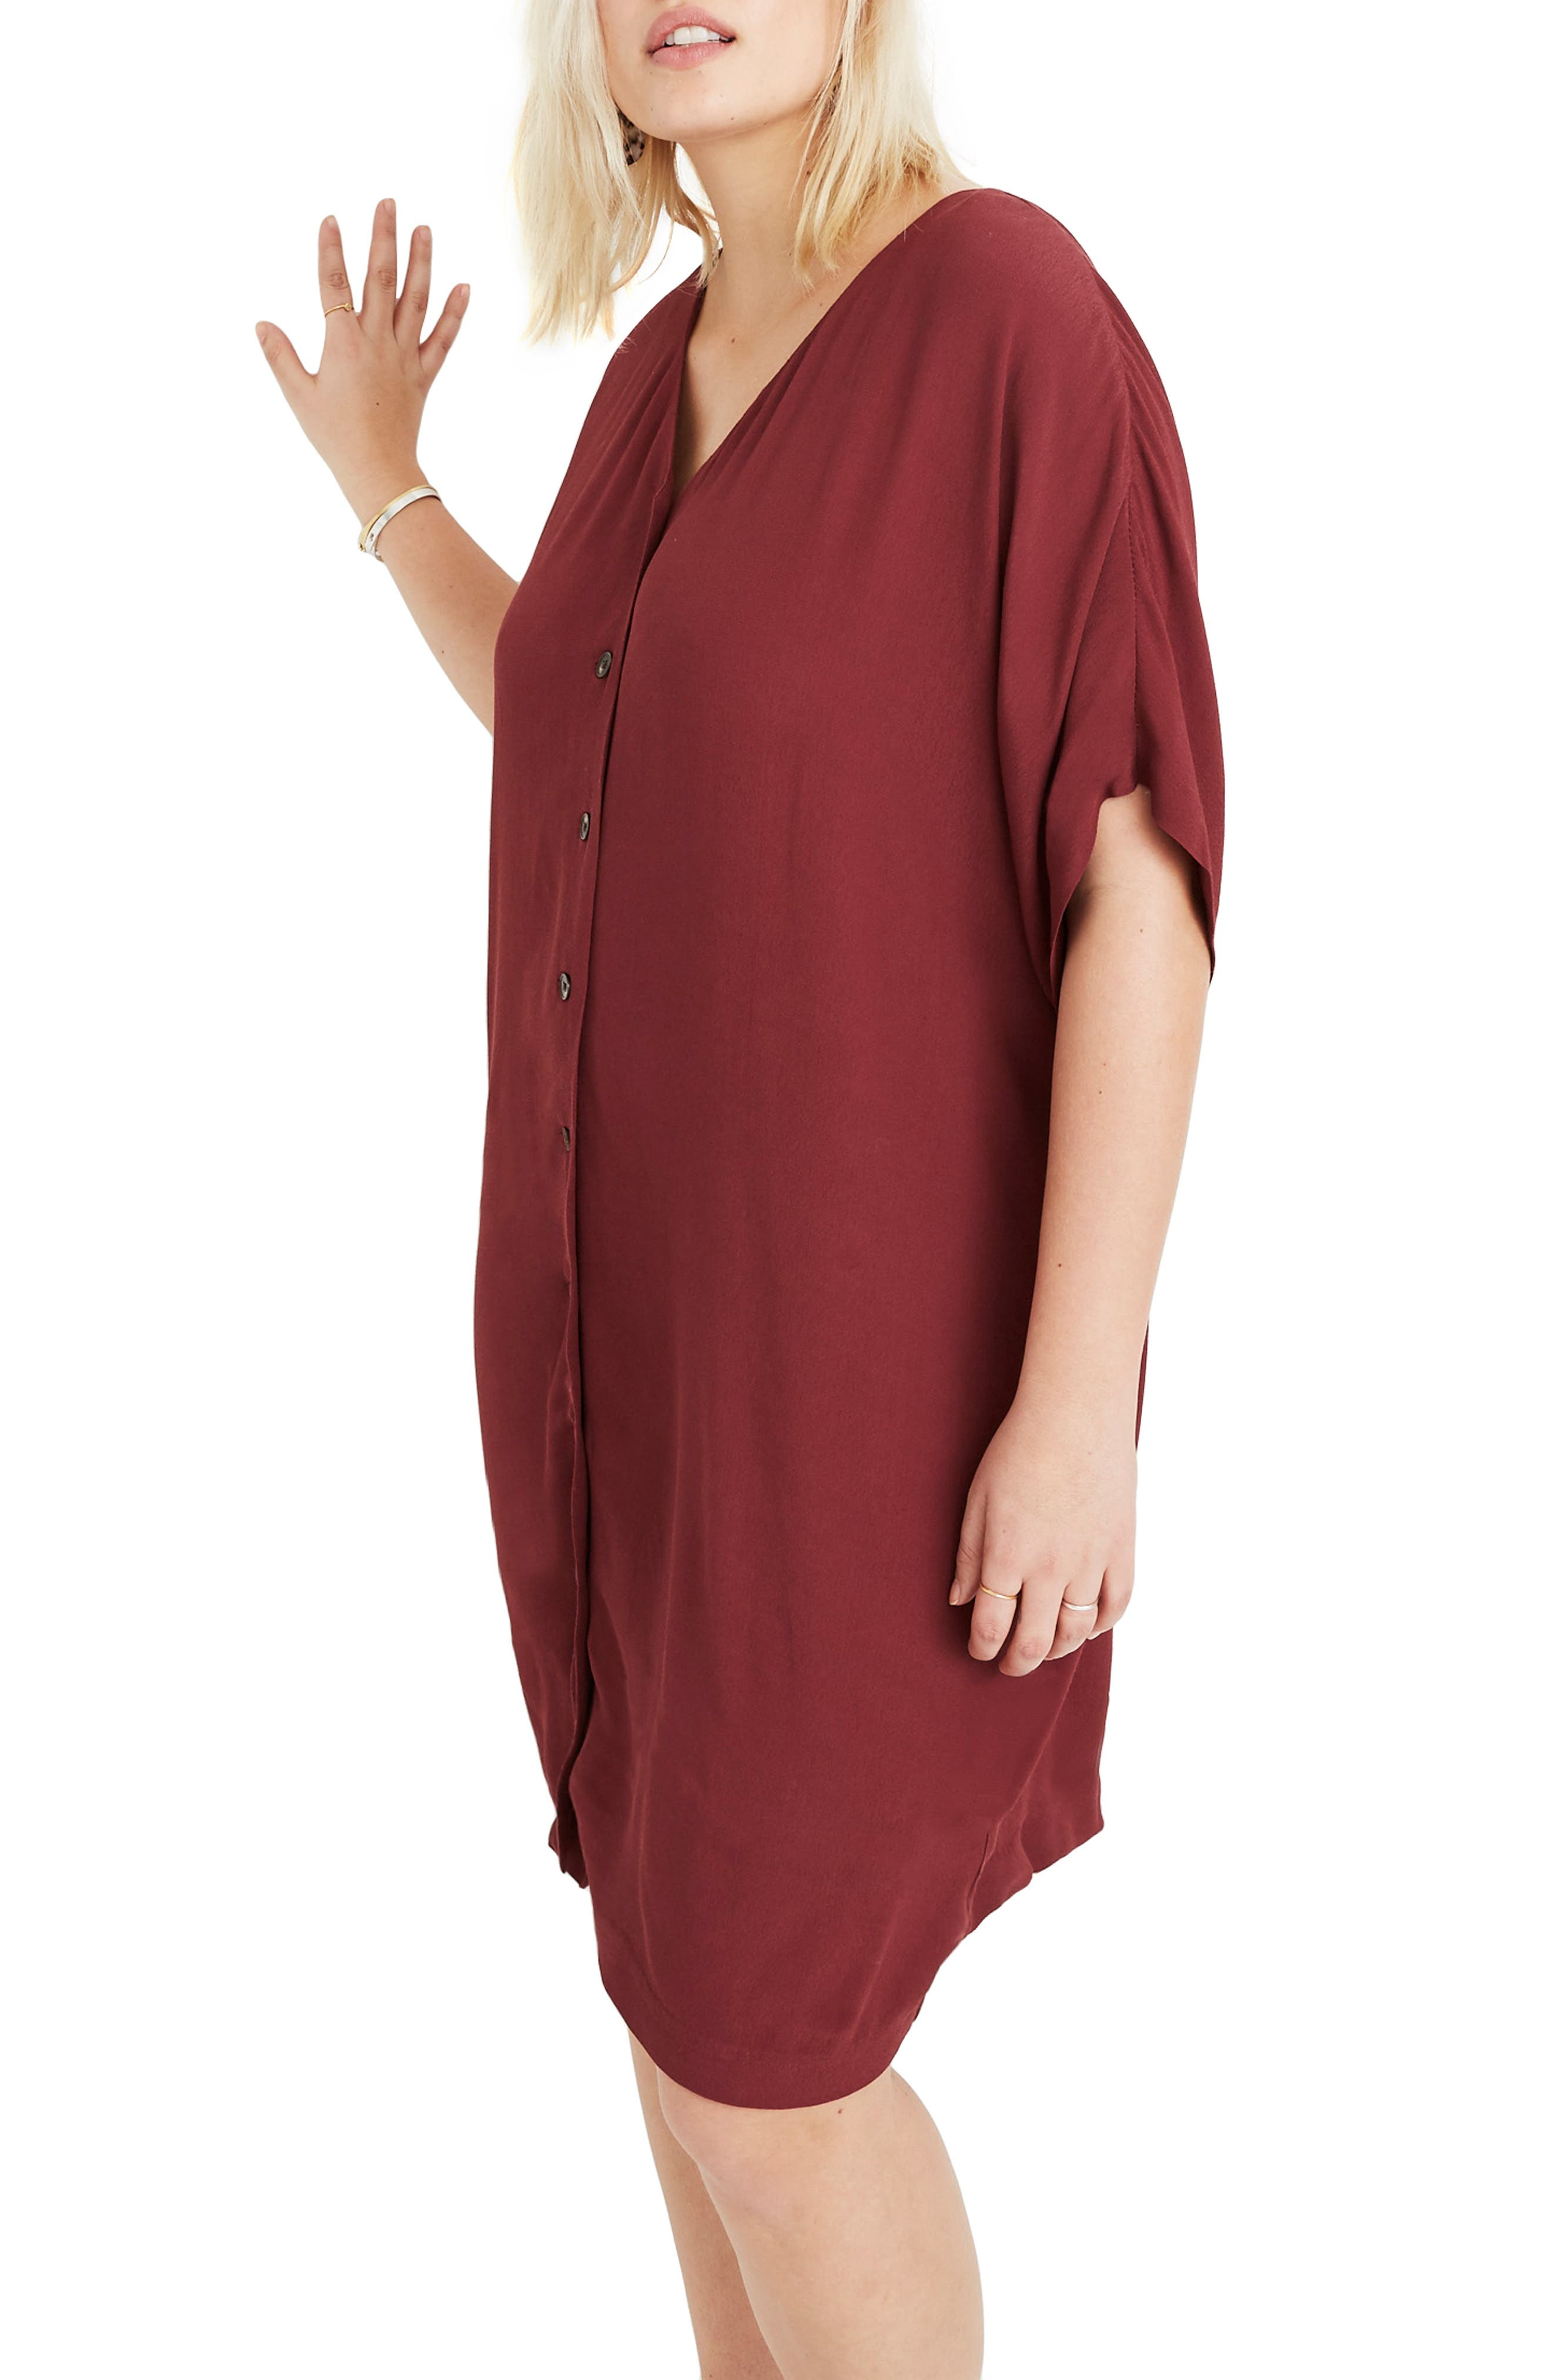 MADEWELL, Button Front Easy Dress, Alternate thumbnail 2, color, RICH BURGUNDY